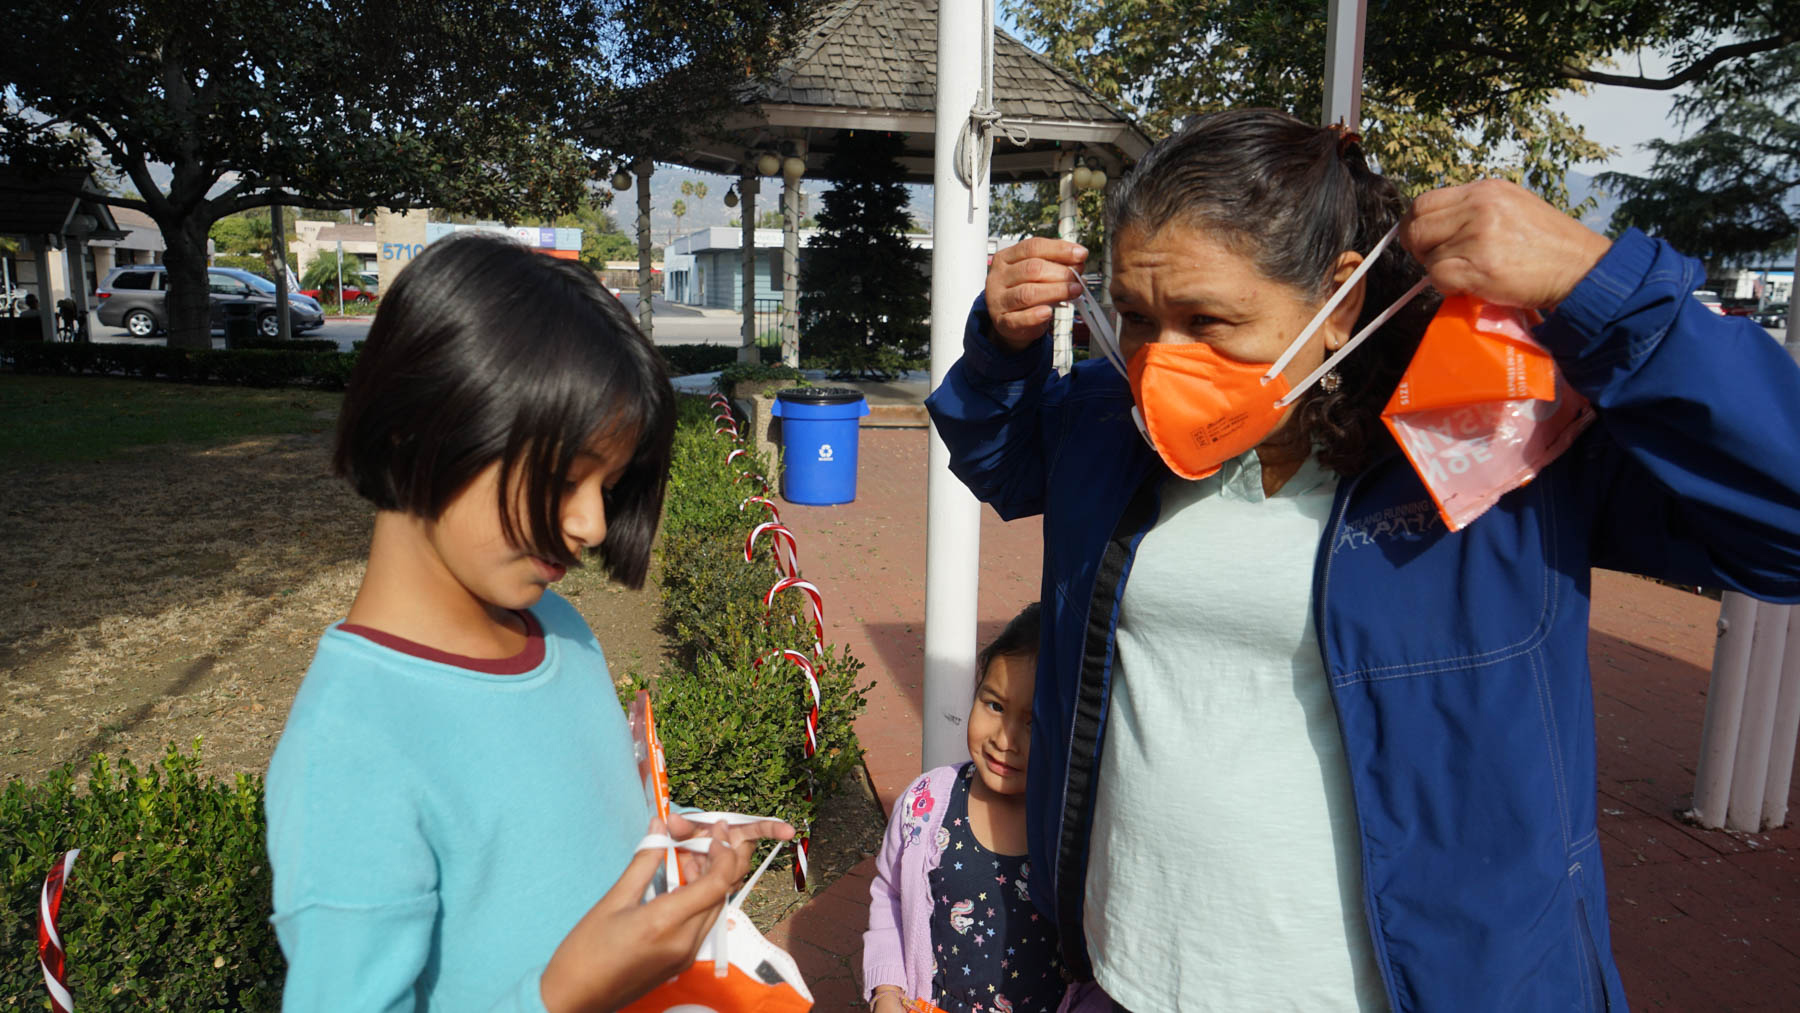 Residents pick up N95 masks on Tuesday at the Goleta Valley Community Center. Direct Relief provided over 43,000 masks to the public during times of compromised air quality during the Cave Fire. (Amarica Rafanelli/ Direct Relief)